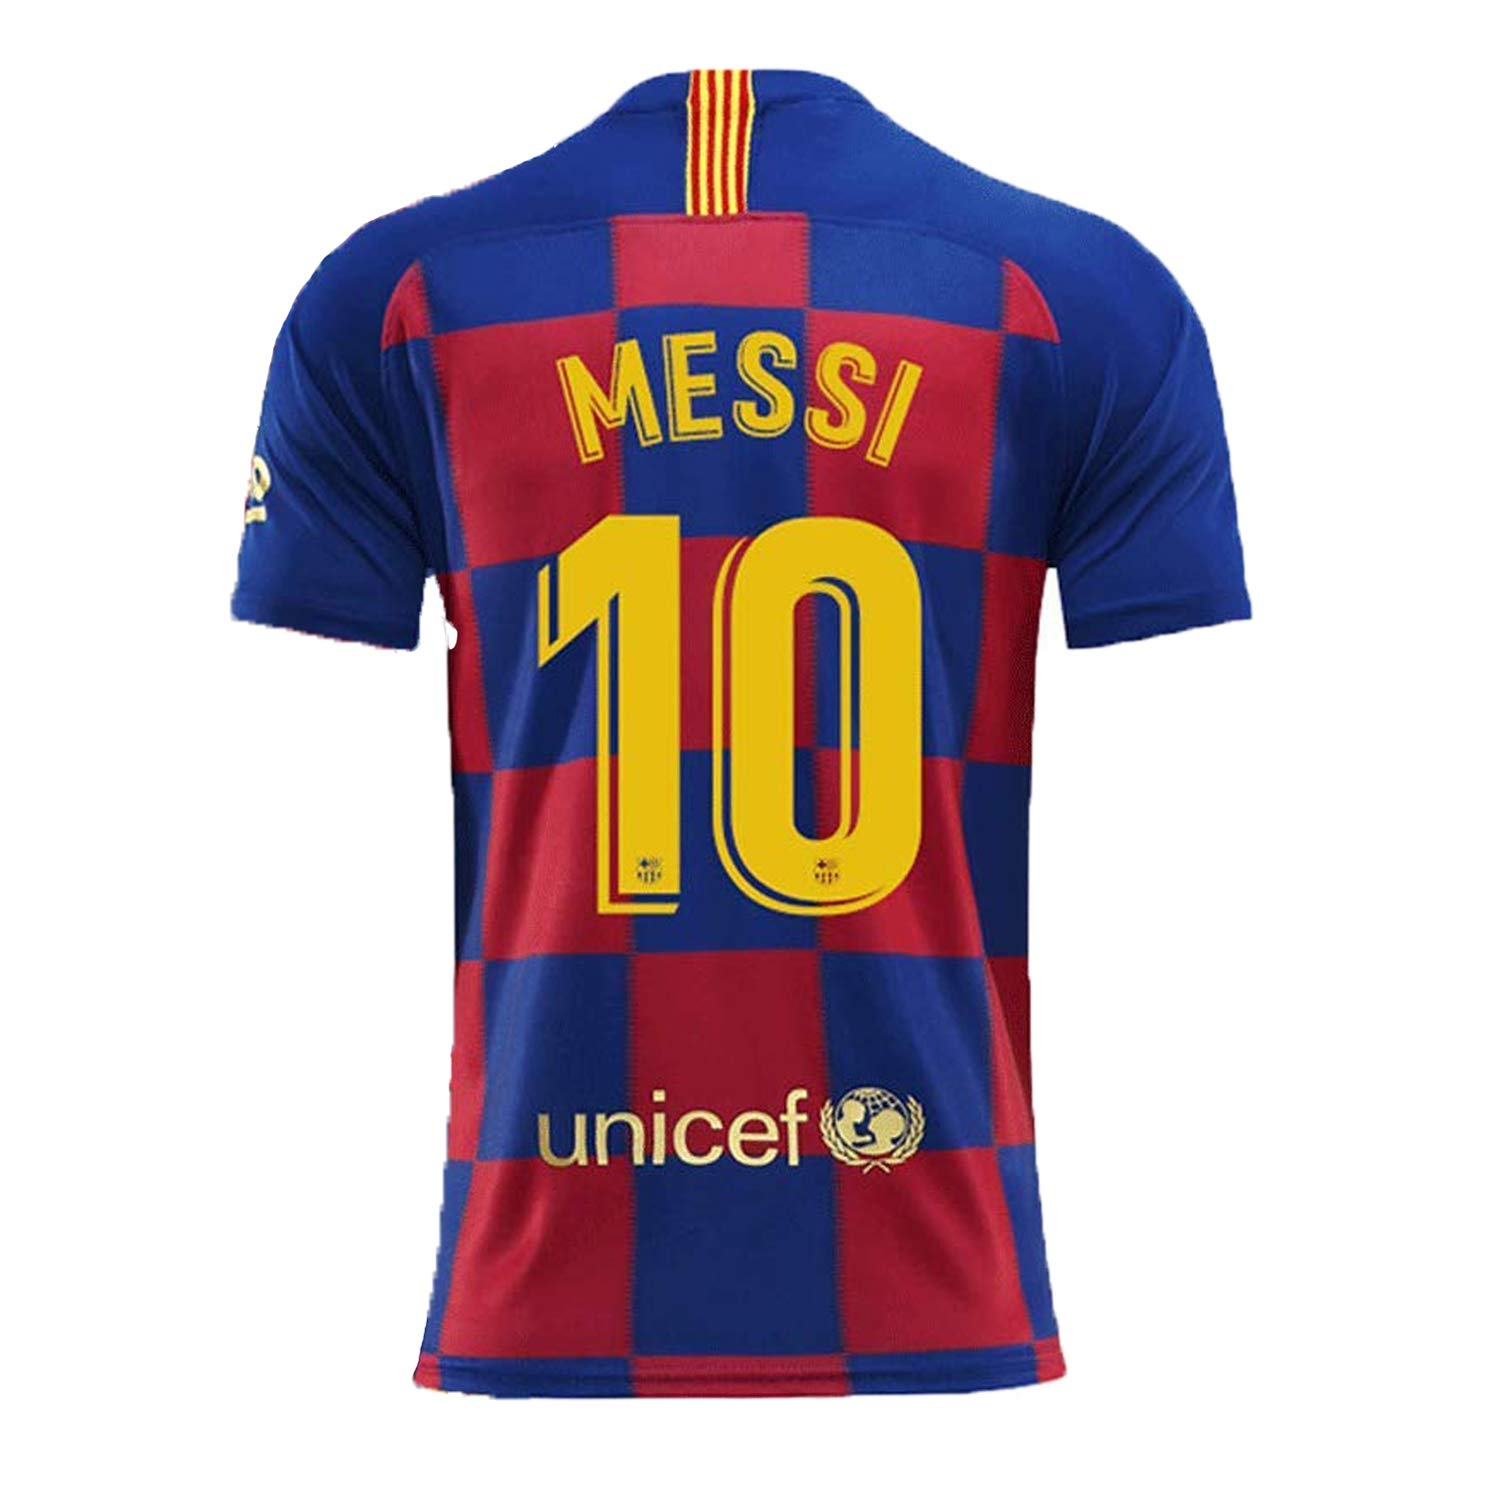 new style a2366 6e508 Amazon.com: 19-20 Barcelona 10 Messi and Juventus 7C Ronaldo ...